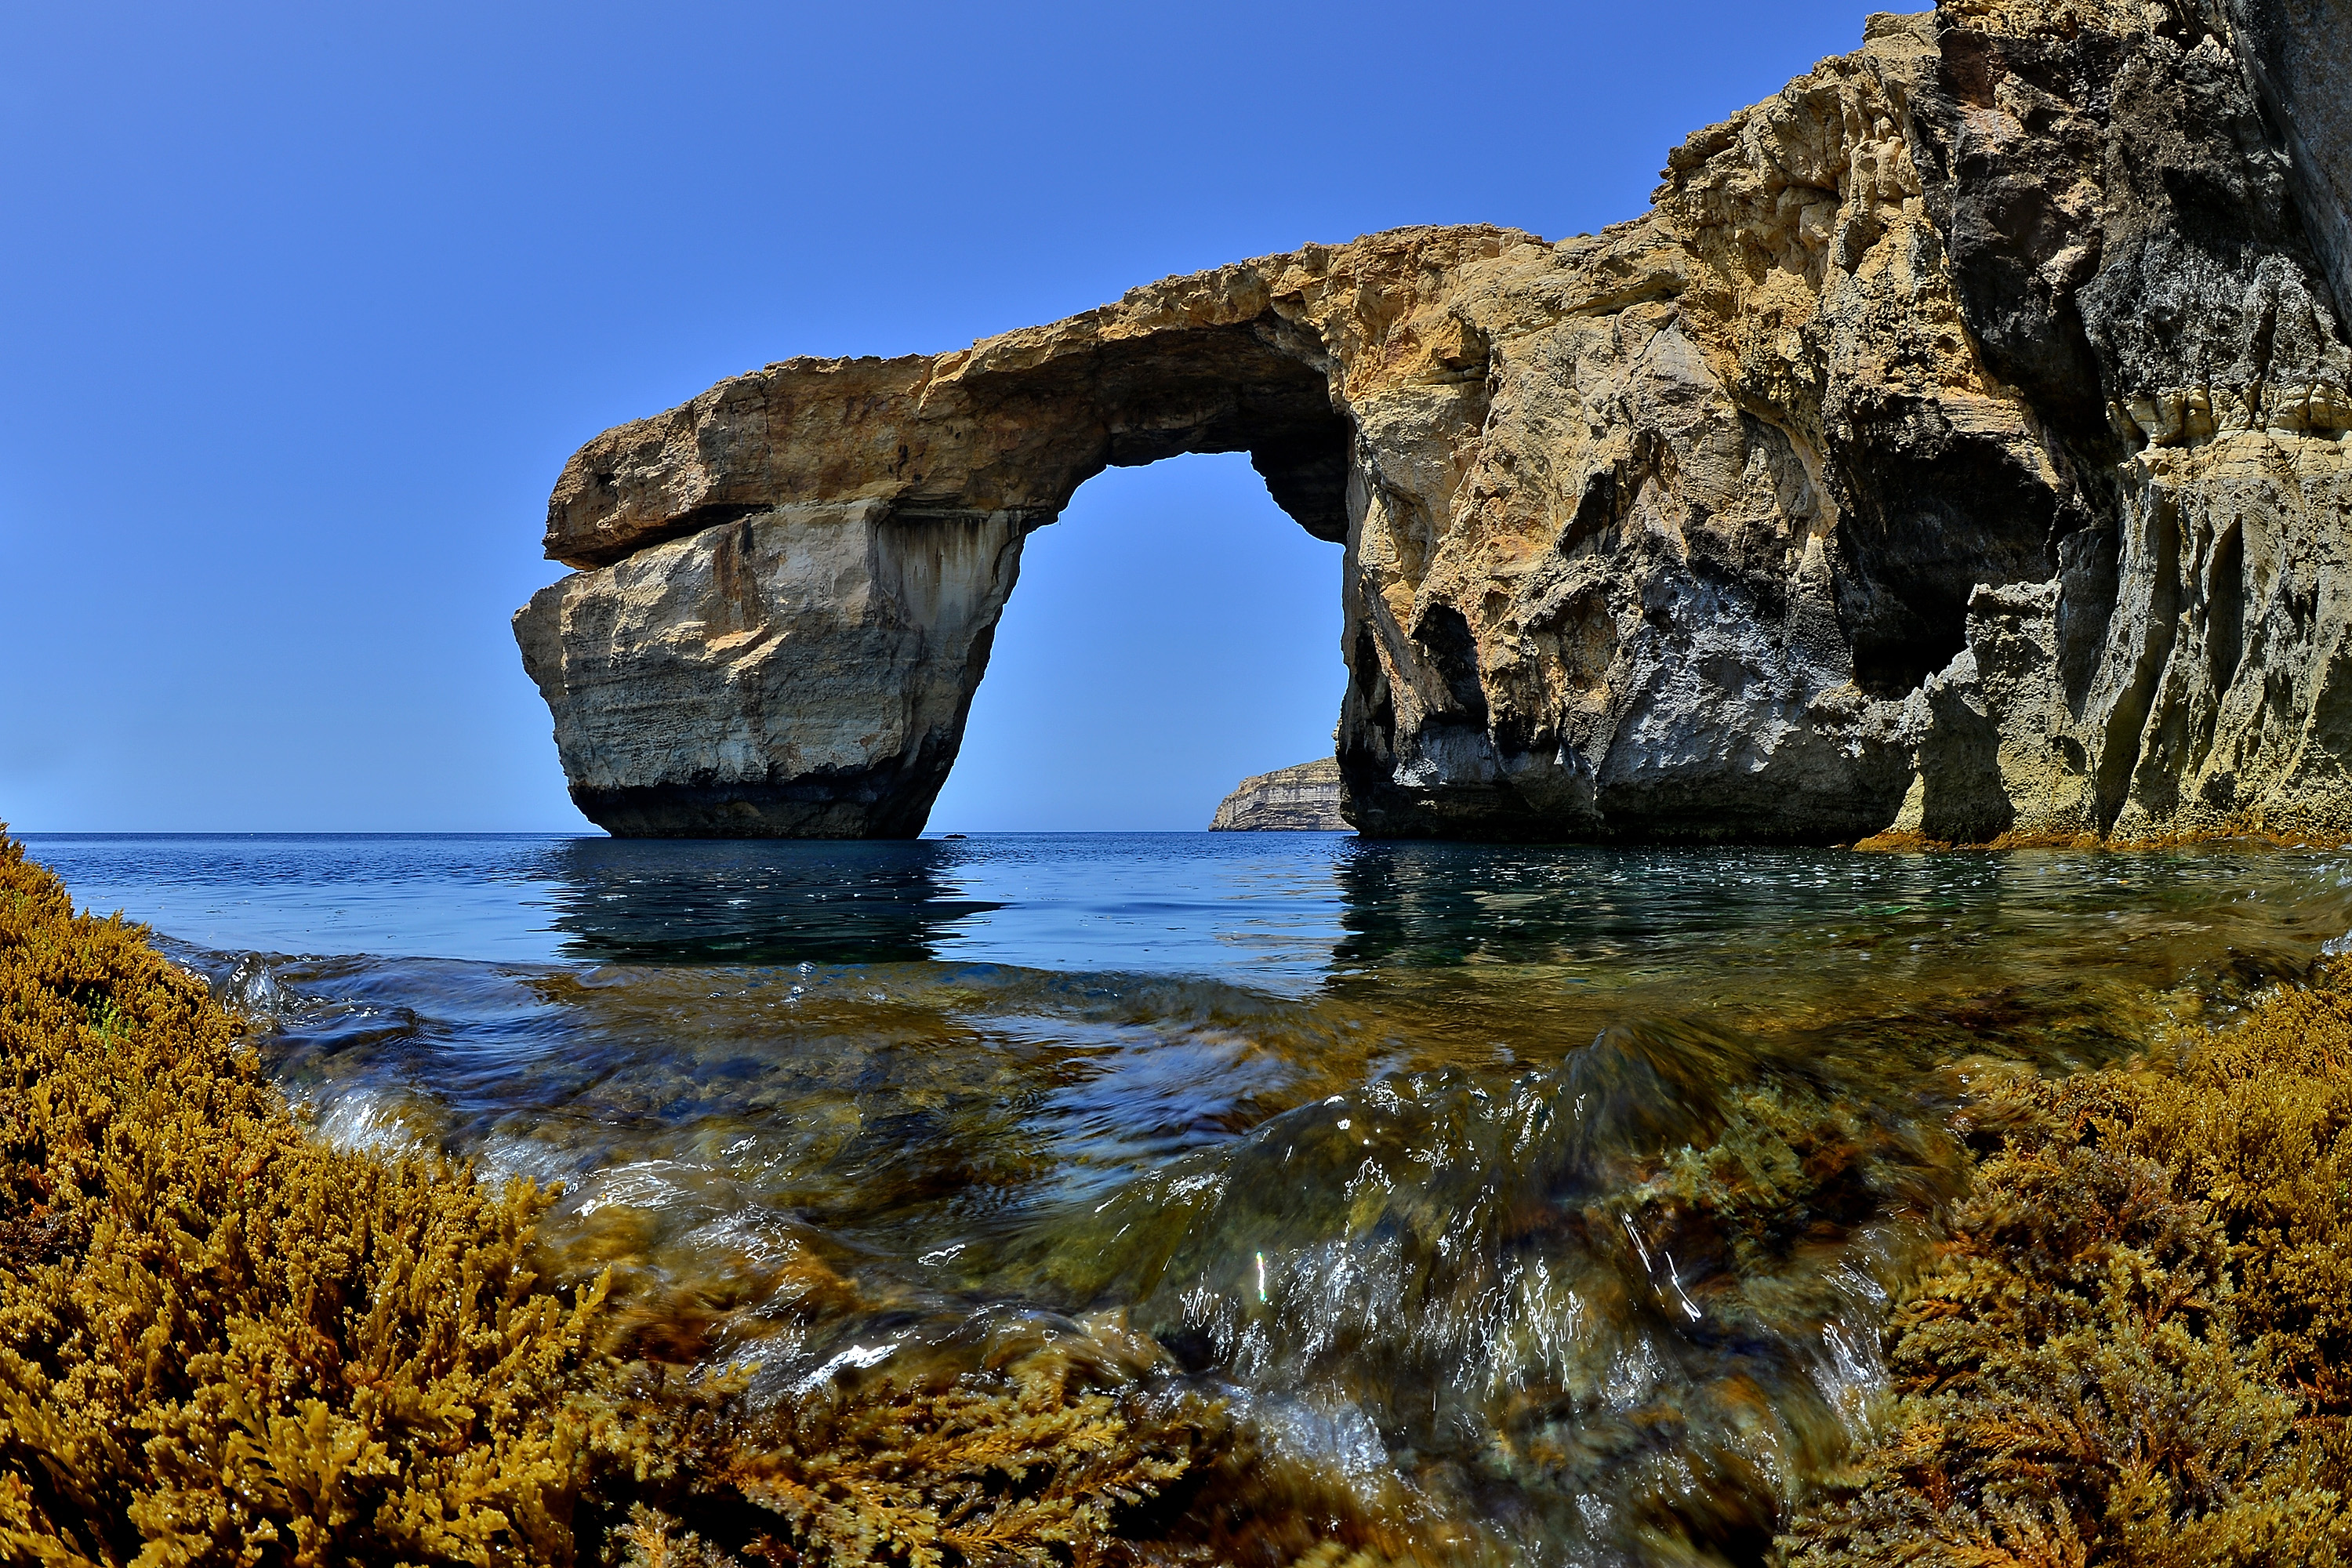 DWEJRA, GOZO - MAY 20:  The natural arch 'The Azure Window' is seen at Dwejra Bay on May 20, 2014 in Dwejra/Gozo, Malta.